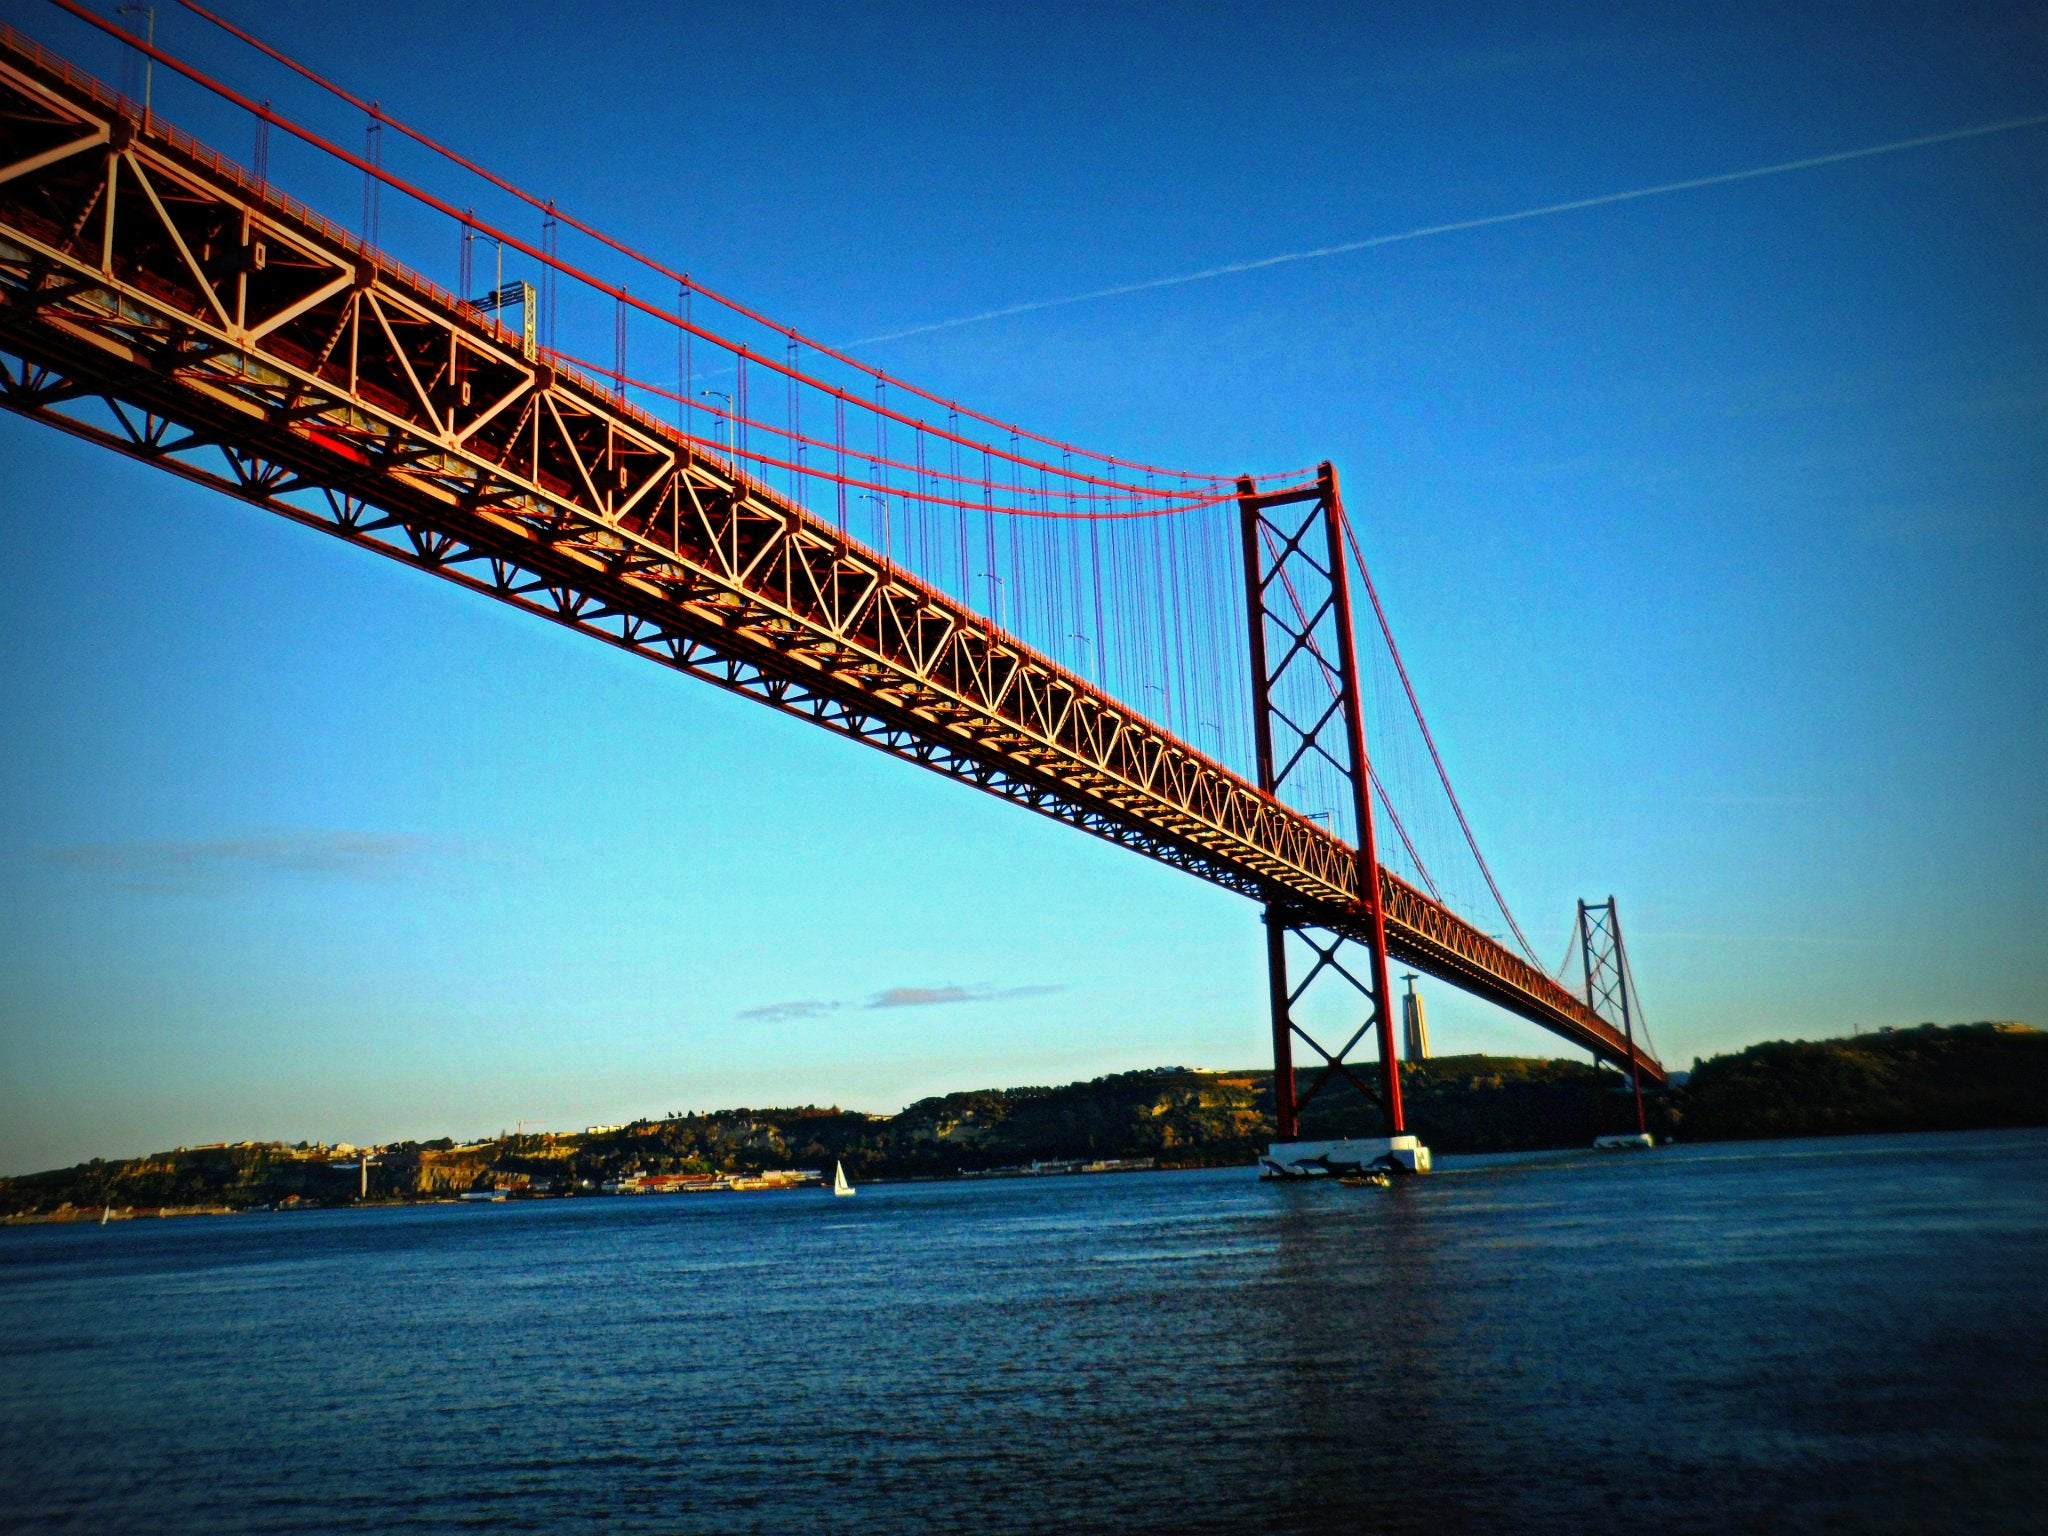 Mar en Puente 25 de Abril